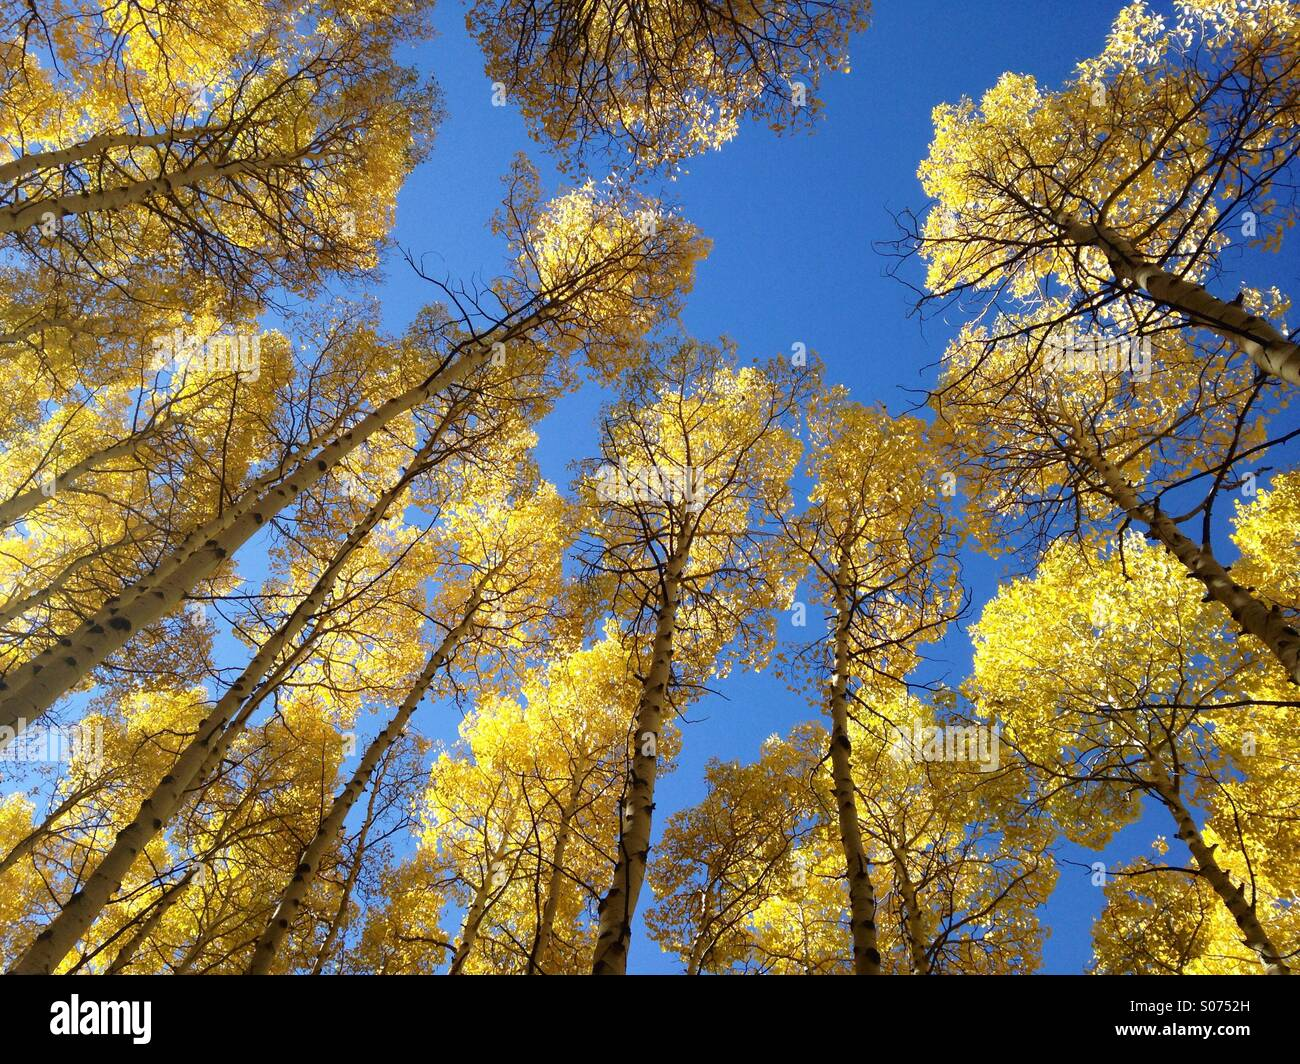 A view from an Aspen Grove floor shows the golden tops of Aspen trees set against the blue sky in Utah. - Stock Image